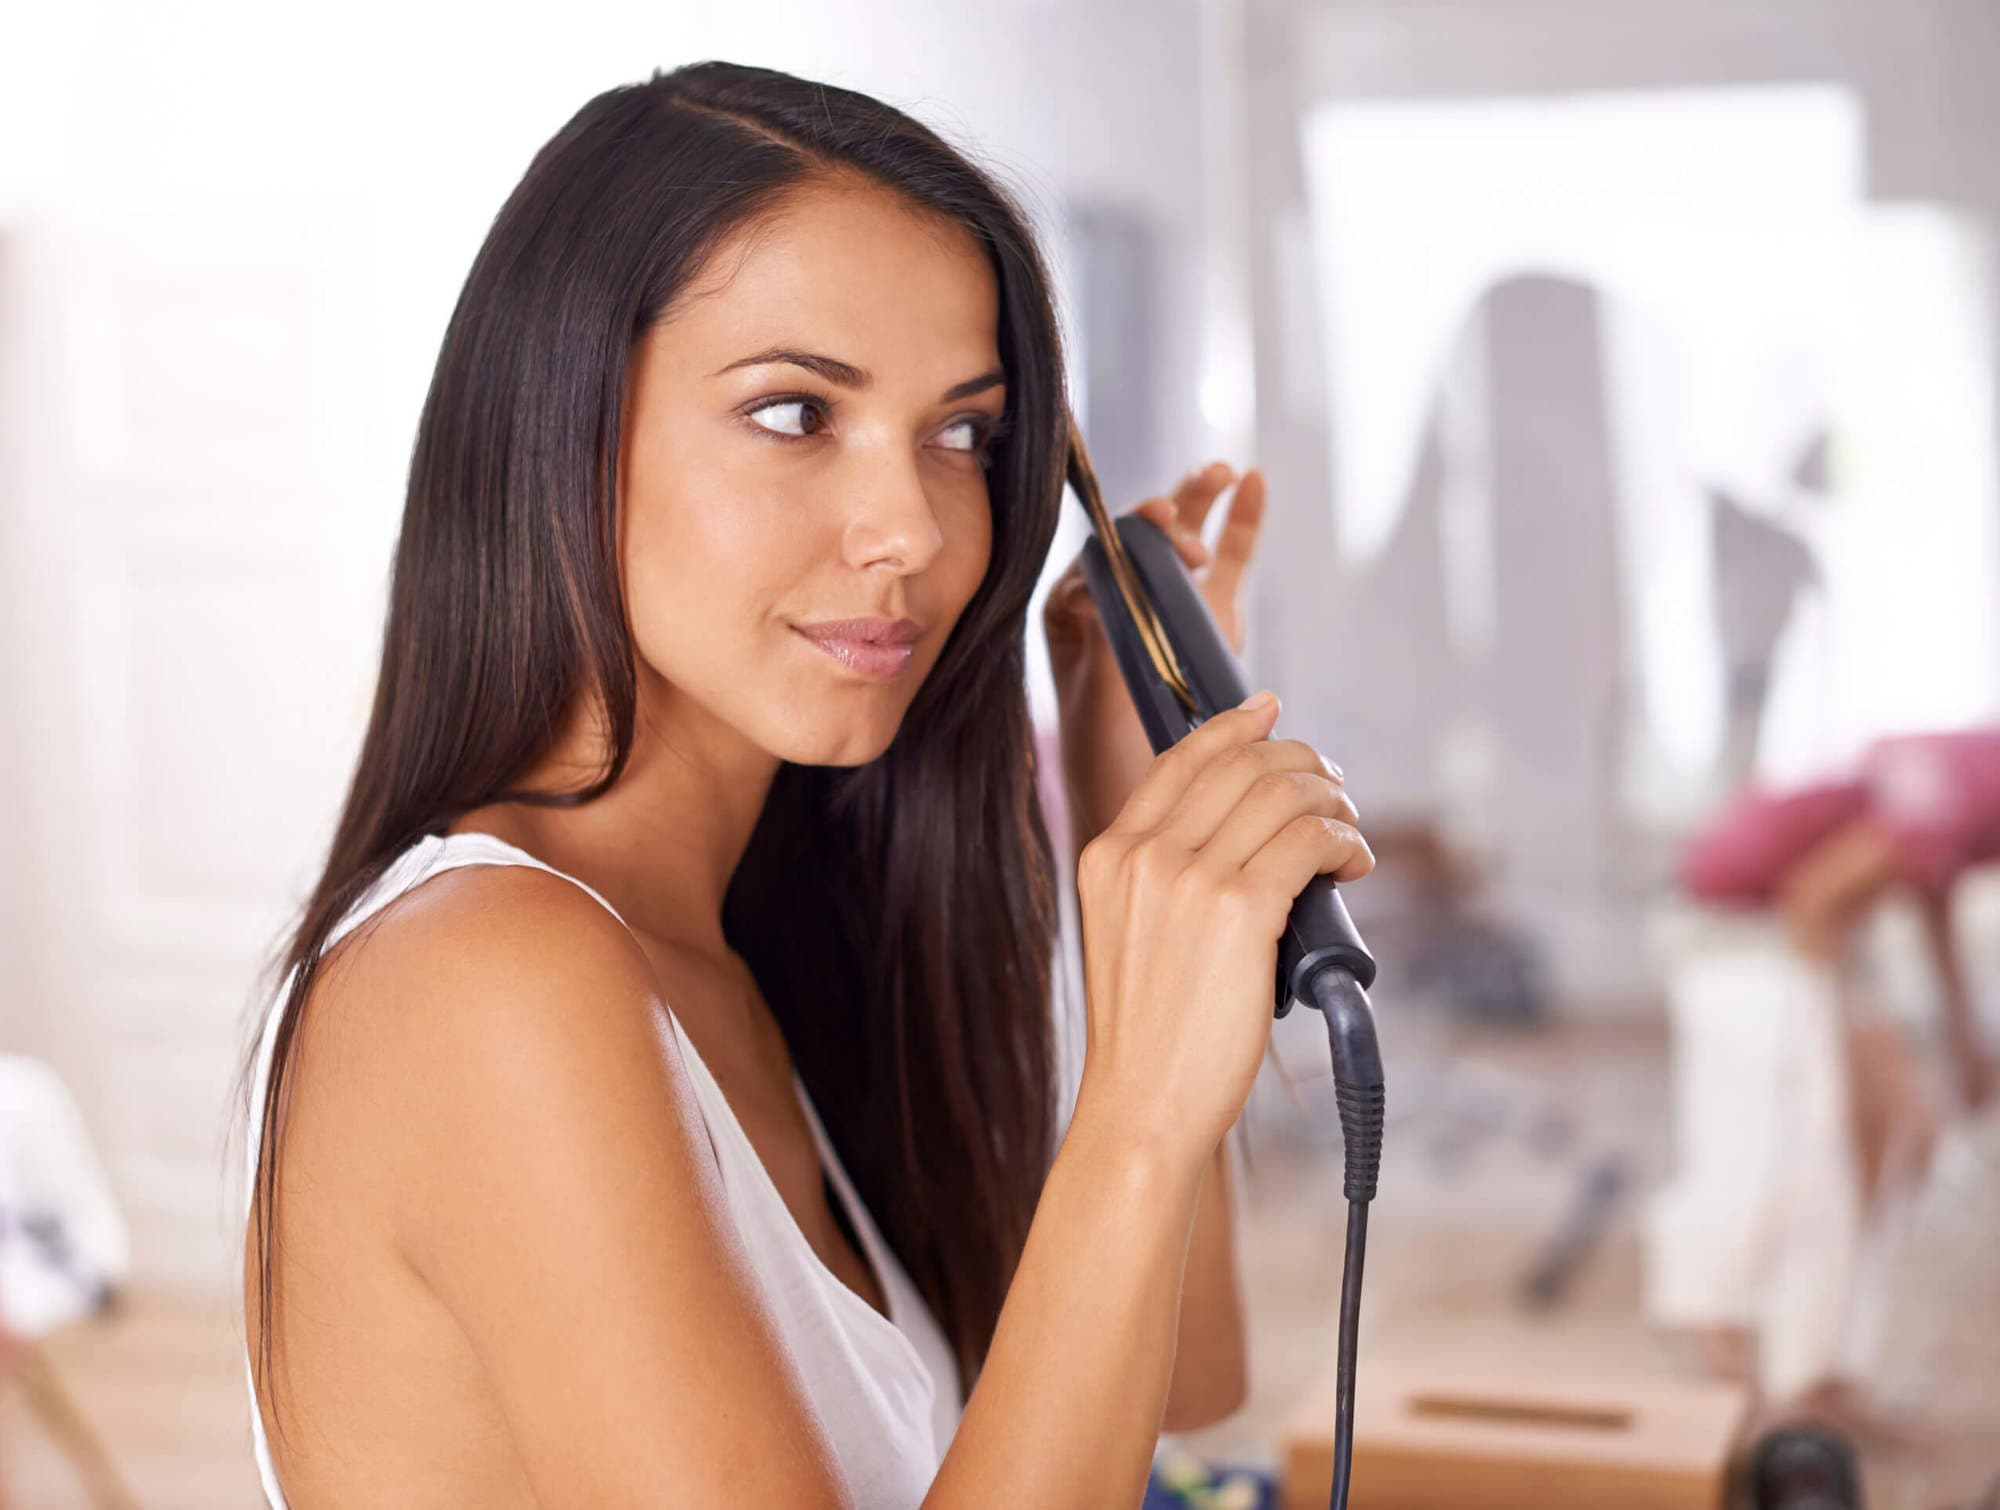 Woman with long hair flat ironing her hair.